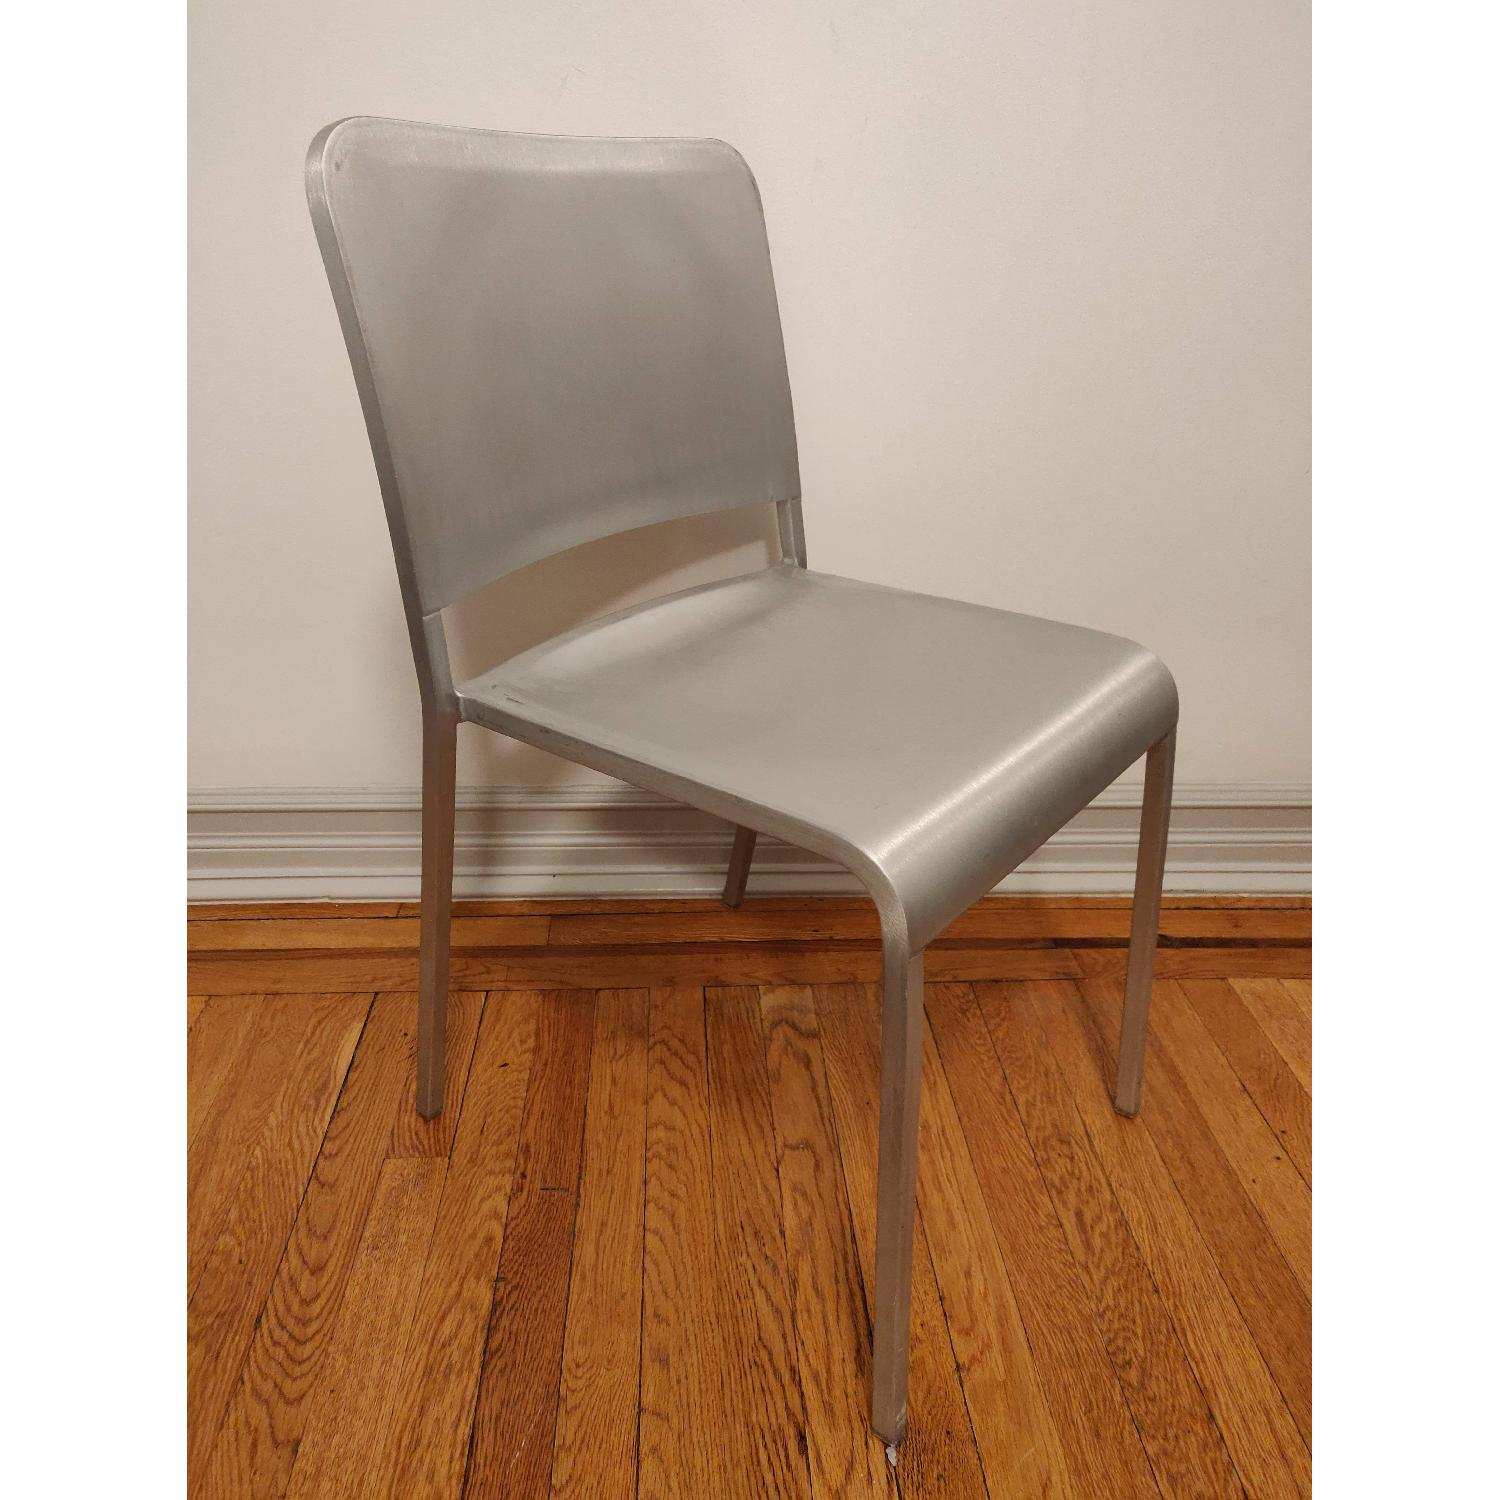 Emeco 20-06 Chairs by Norman Foster - image-1